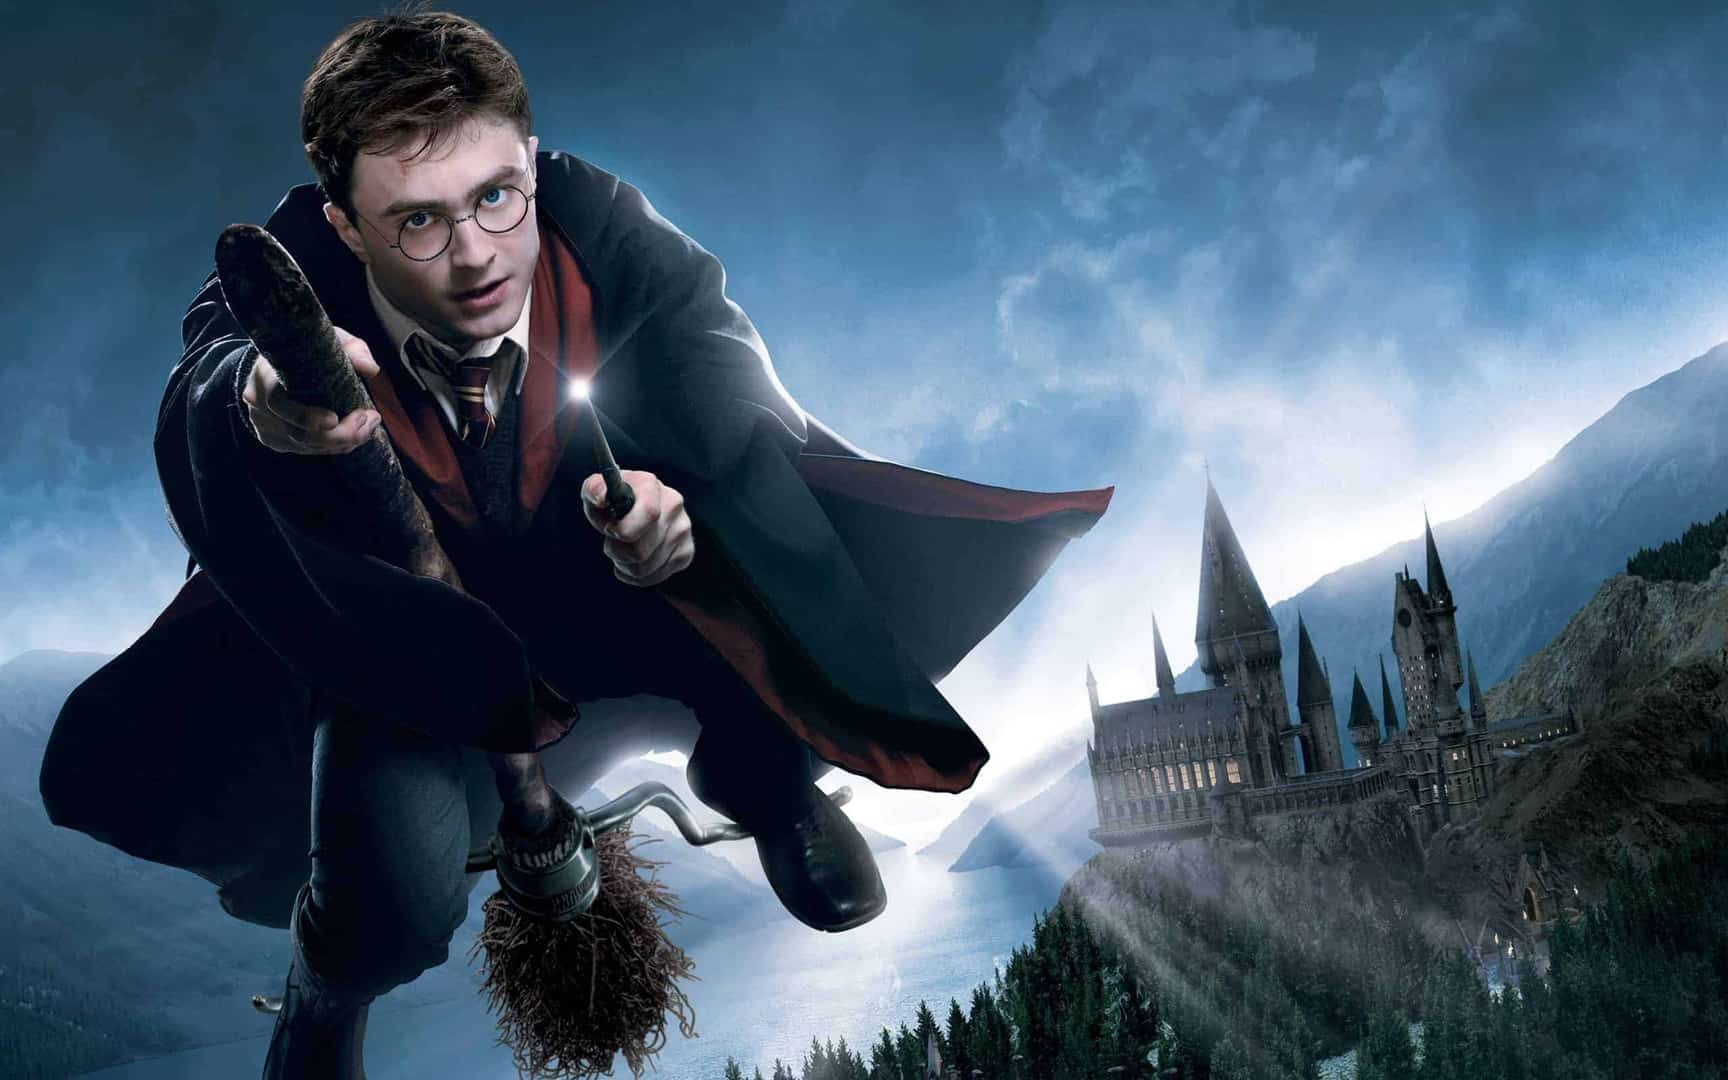 Harry Potter Riding A Broomstick